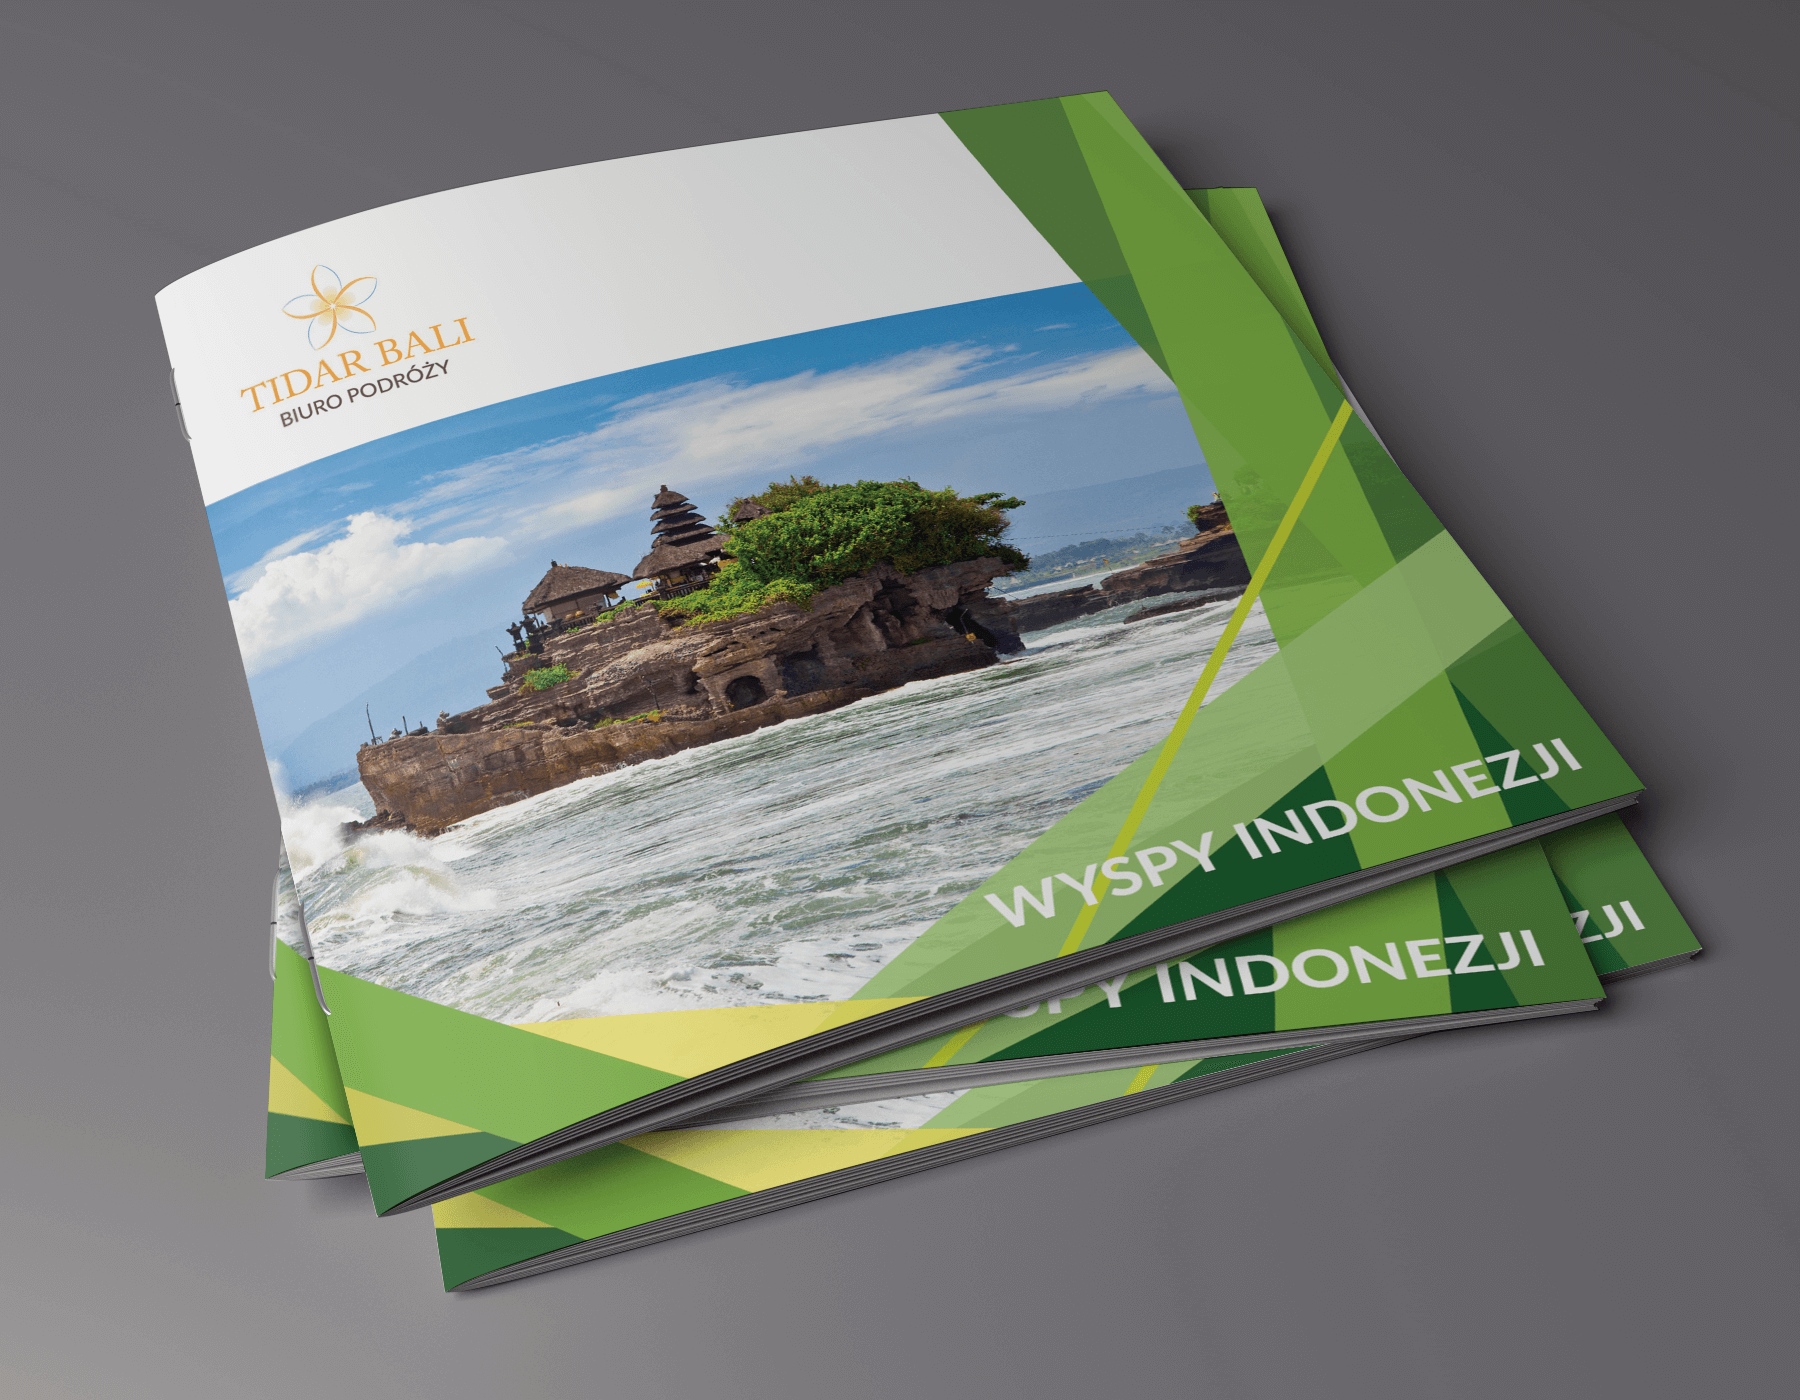 //www.invenzio.pl/wp-content/uploads/2017/05/Mock-up_Brochure_21x21_okładka.png